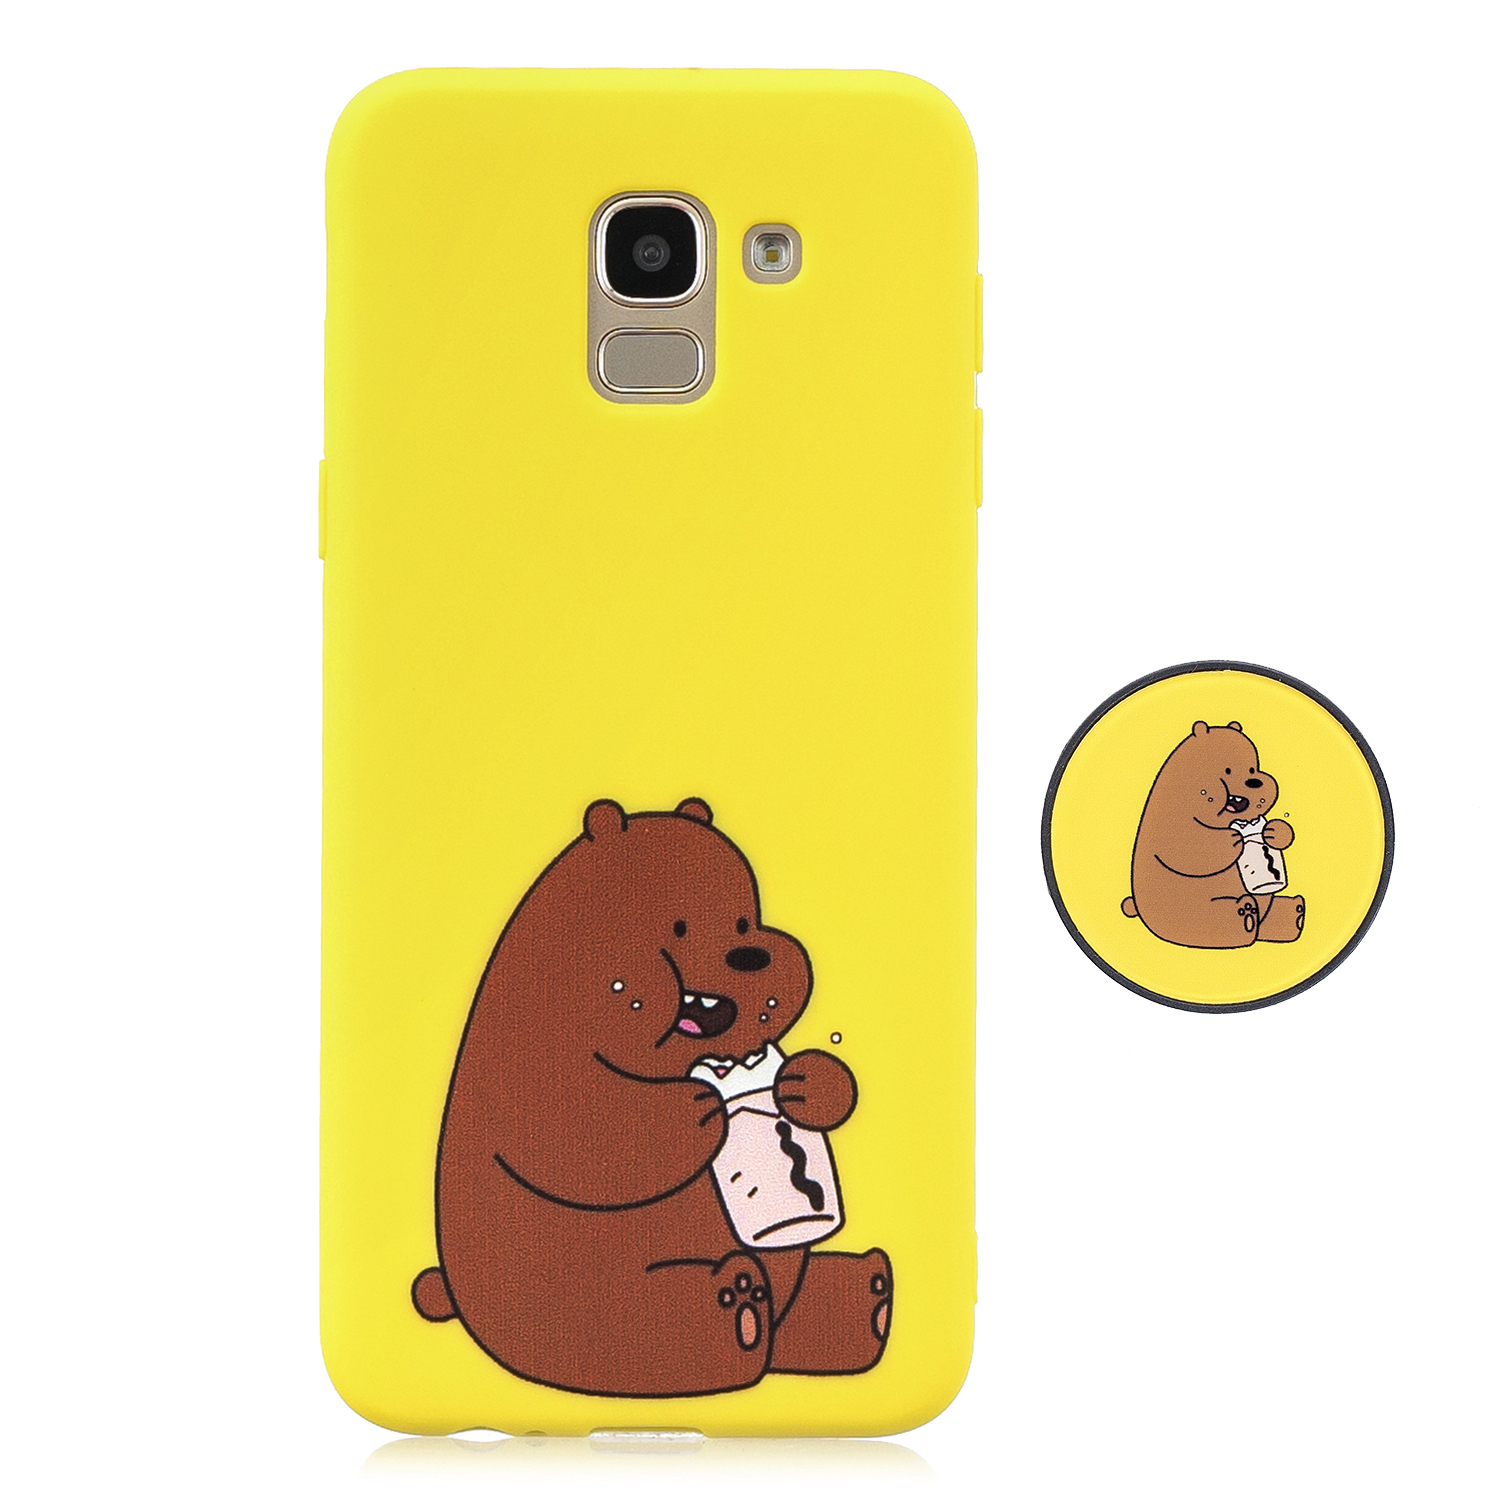 For Samsung J6 2018 Non-Slip TPU Bumper Case Shockproof Full-Body Protective Case Cover with Adjustable Bracket 8